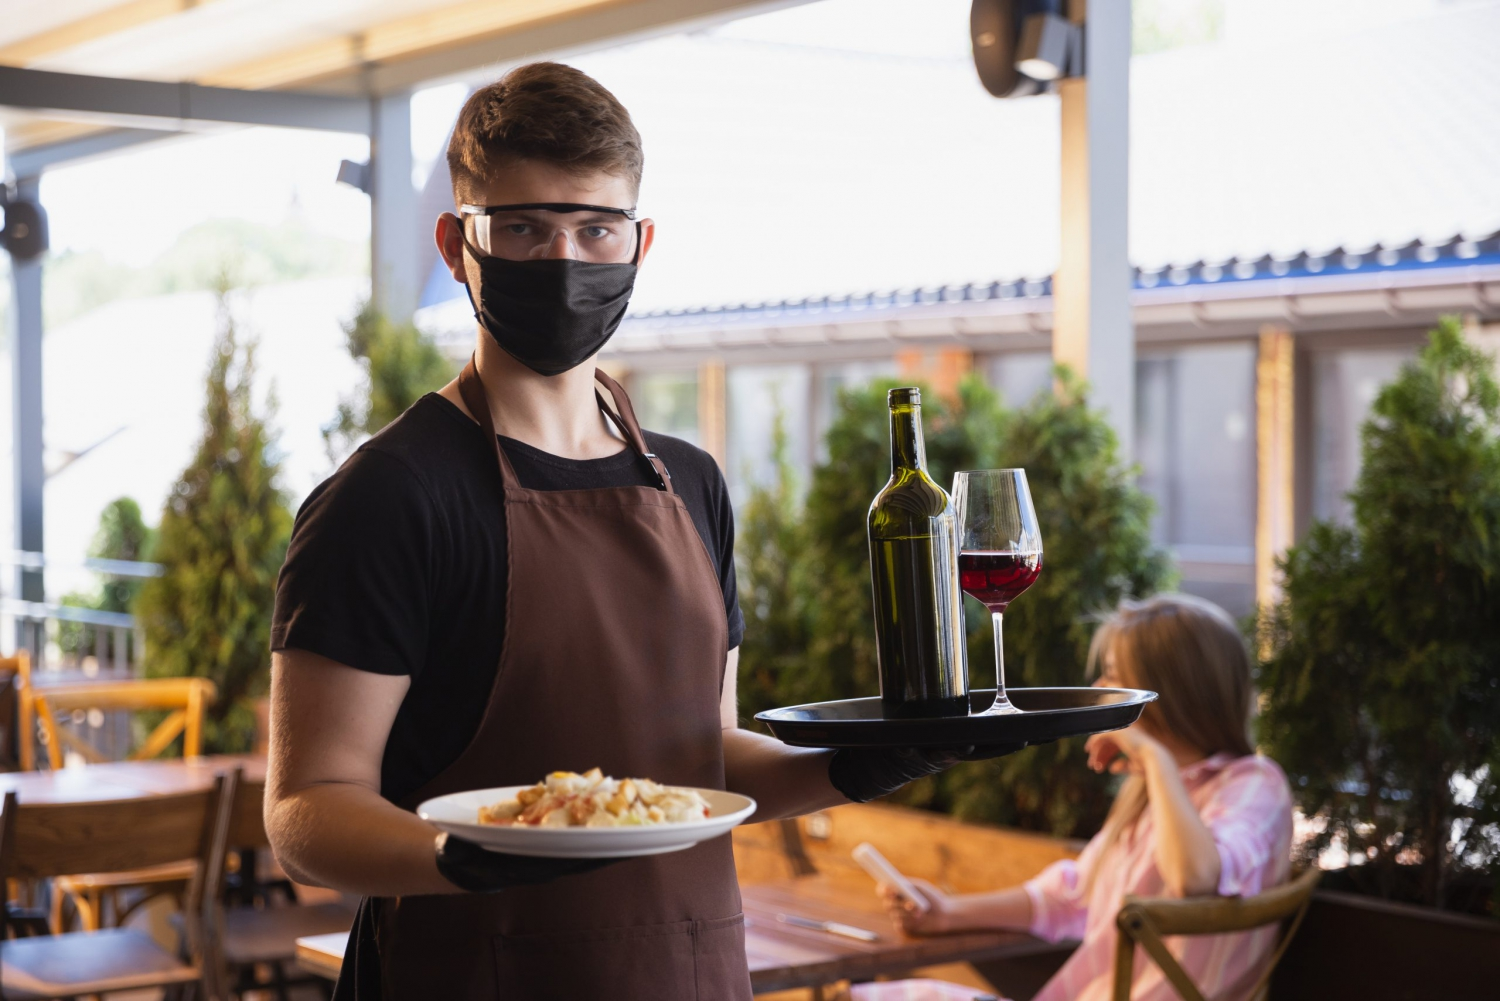 Technology will allow the opening and operation of restaurants